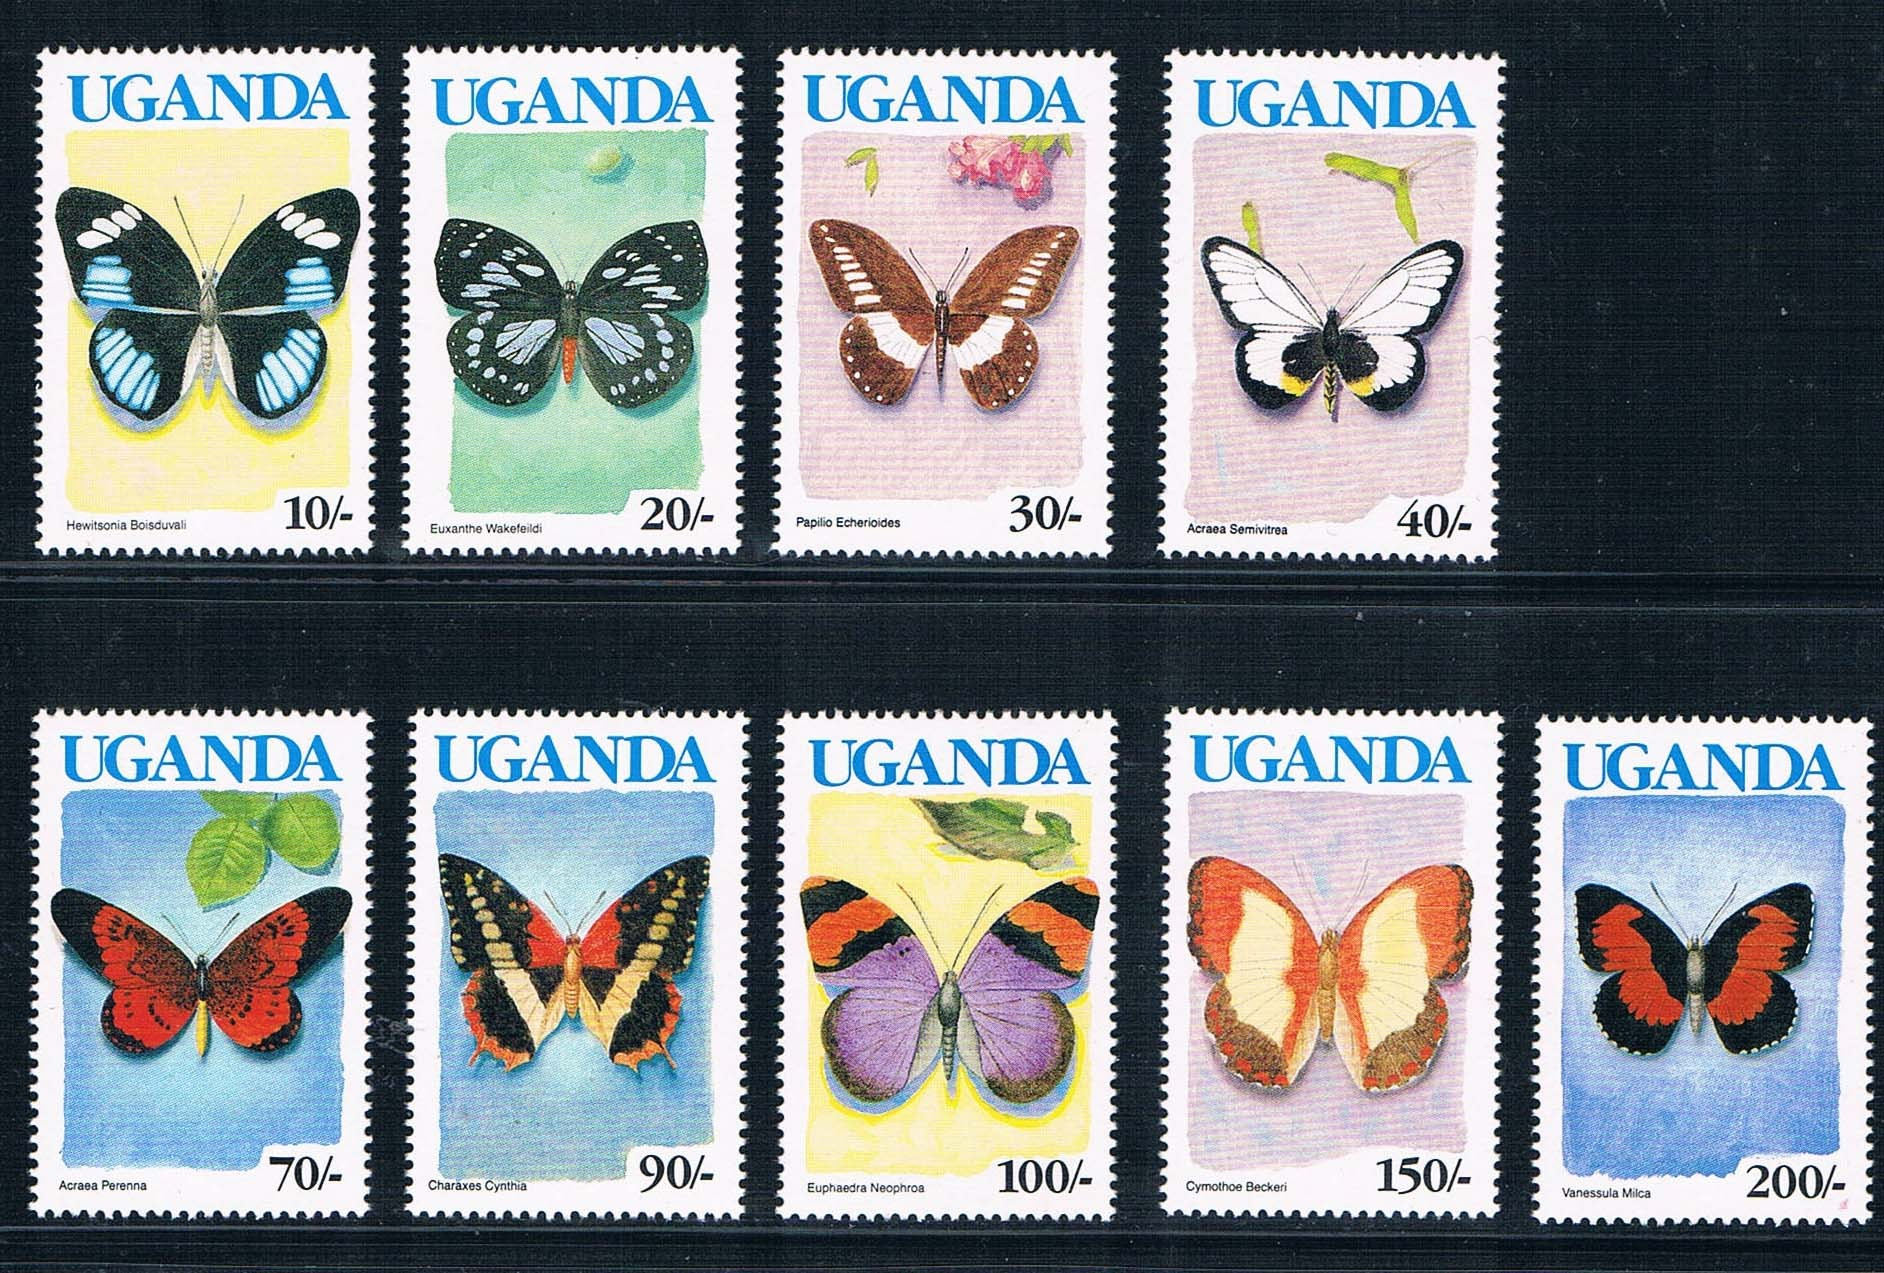 EA1475 Uganda 1990 blue butterfly stamp 9 new low face value 0712 kitlee40100quar4210 value kit survivor tyvek expansion mailer quar4210 and lee ultimate stamp dispenser lee40100